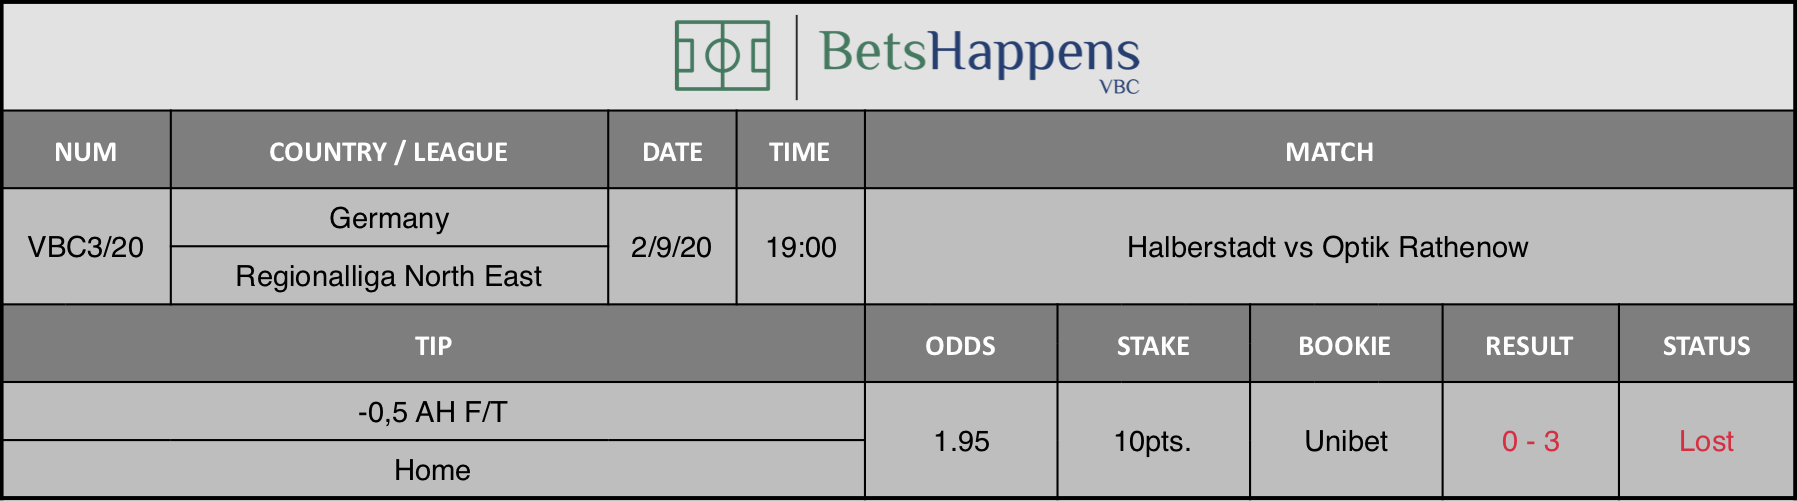 Results of our prediction for the Halberstadt vs Optik Rathenow match in which -0.5 AH F / T Home is advised.